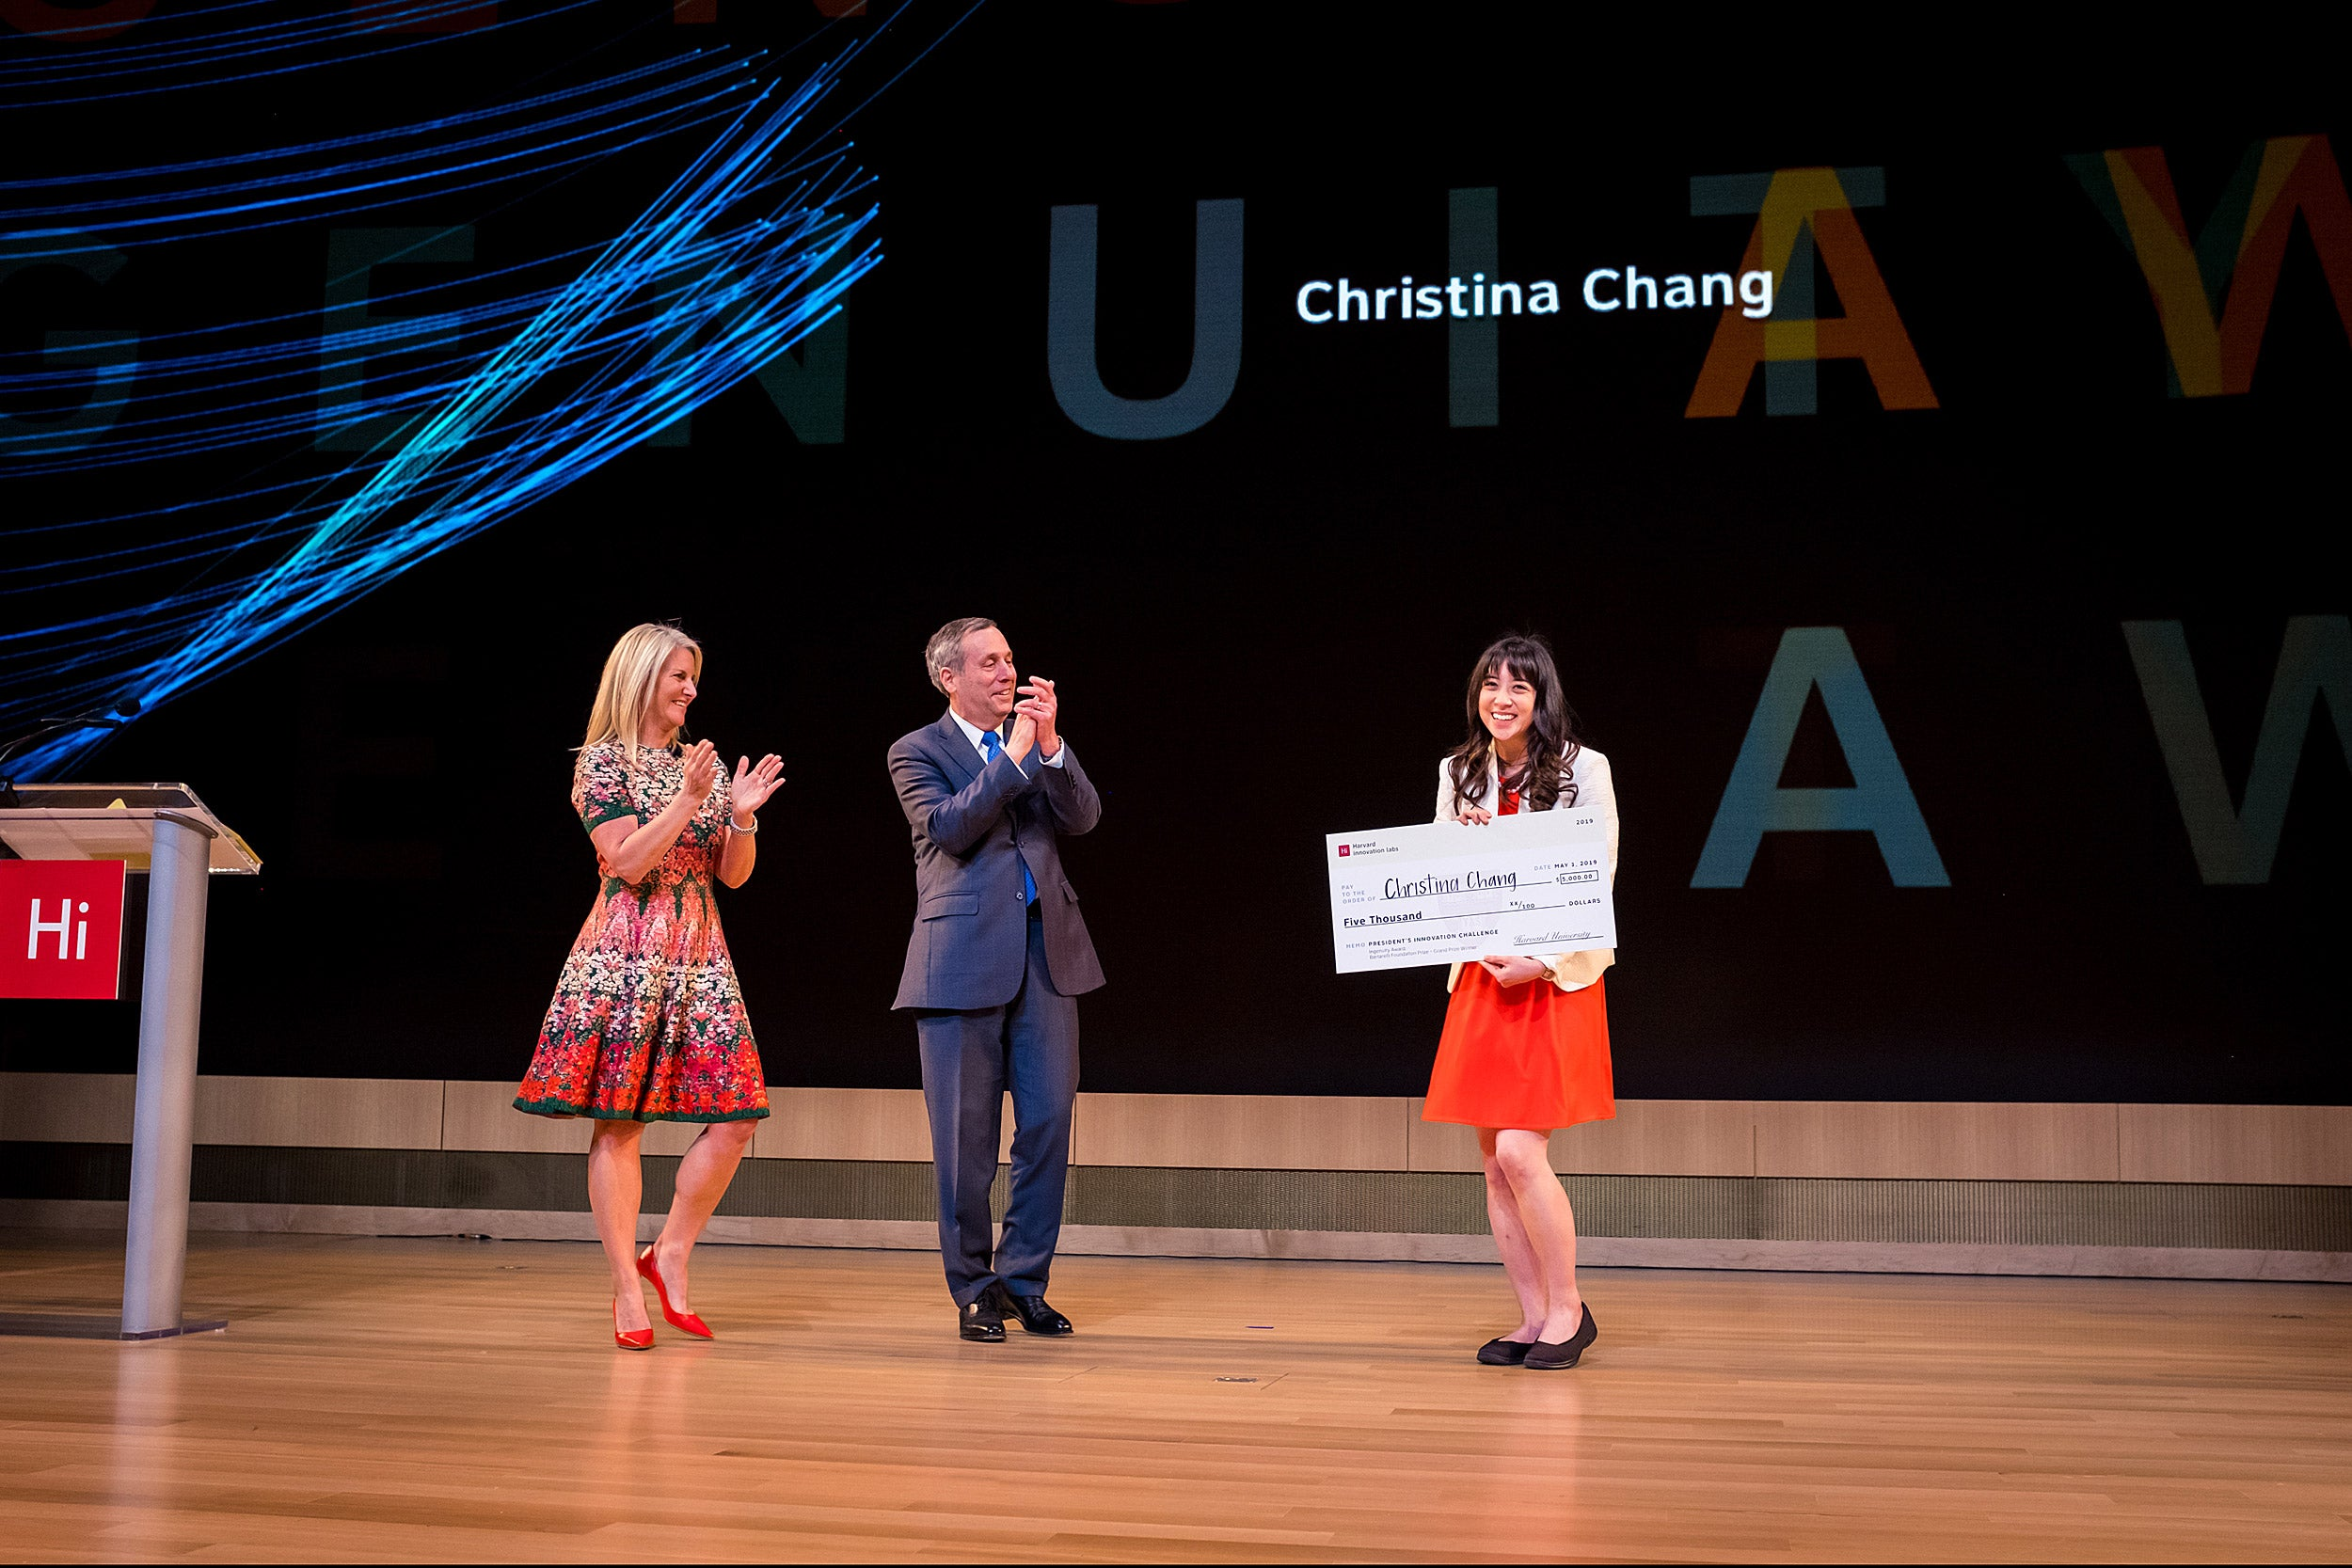 Bacow and Goldstein congratulate Christina Chang